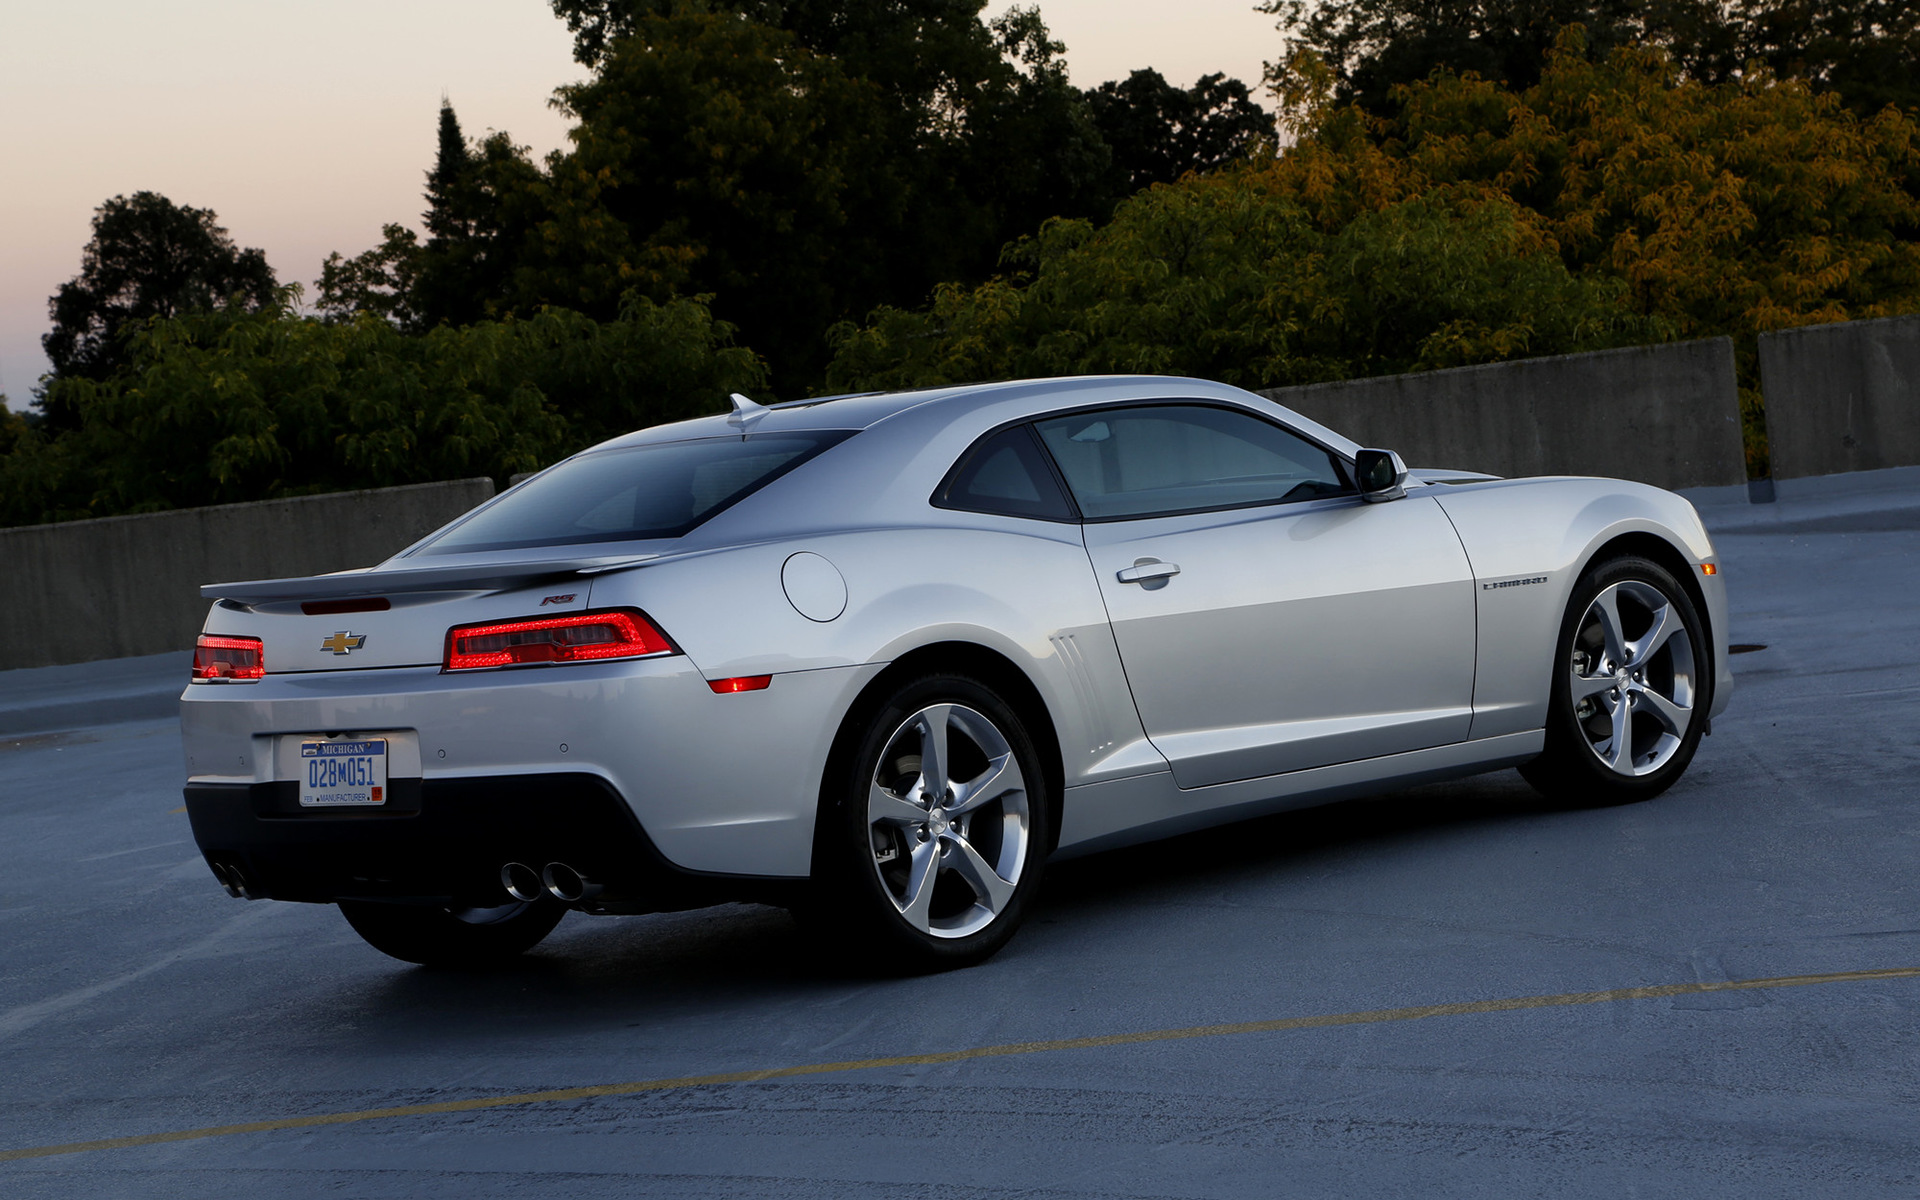 2014 Chevrolet Camaro Lt Rs Wallpapers And Hd Images